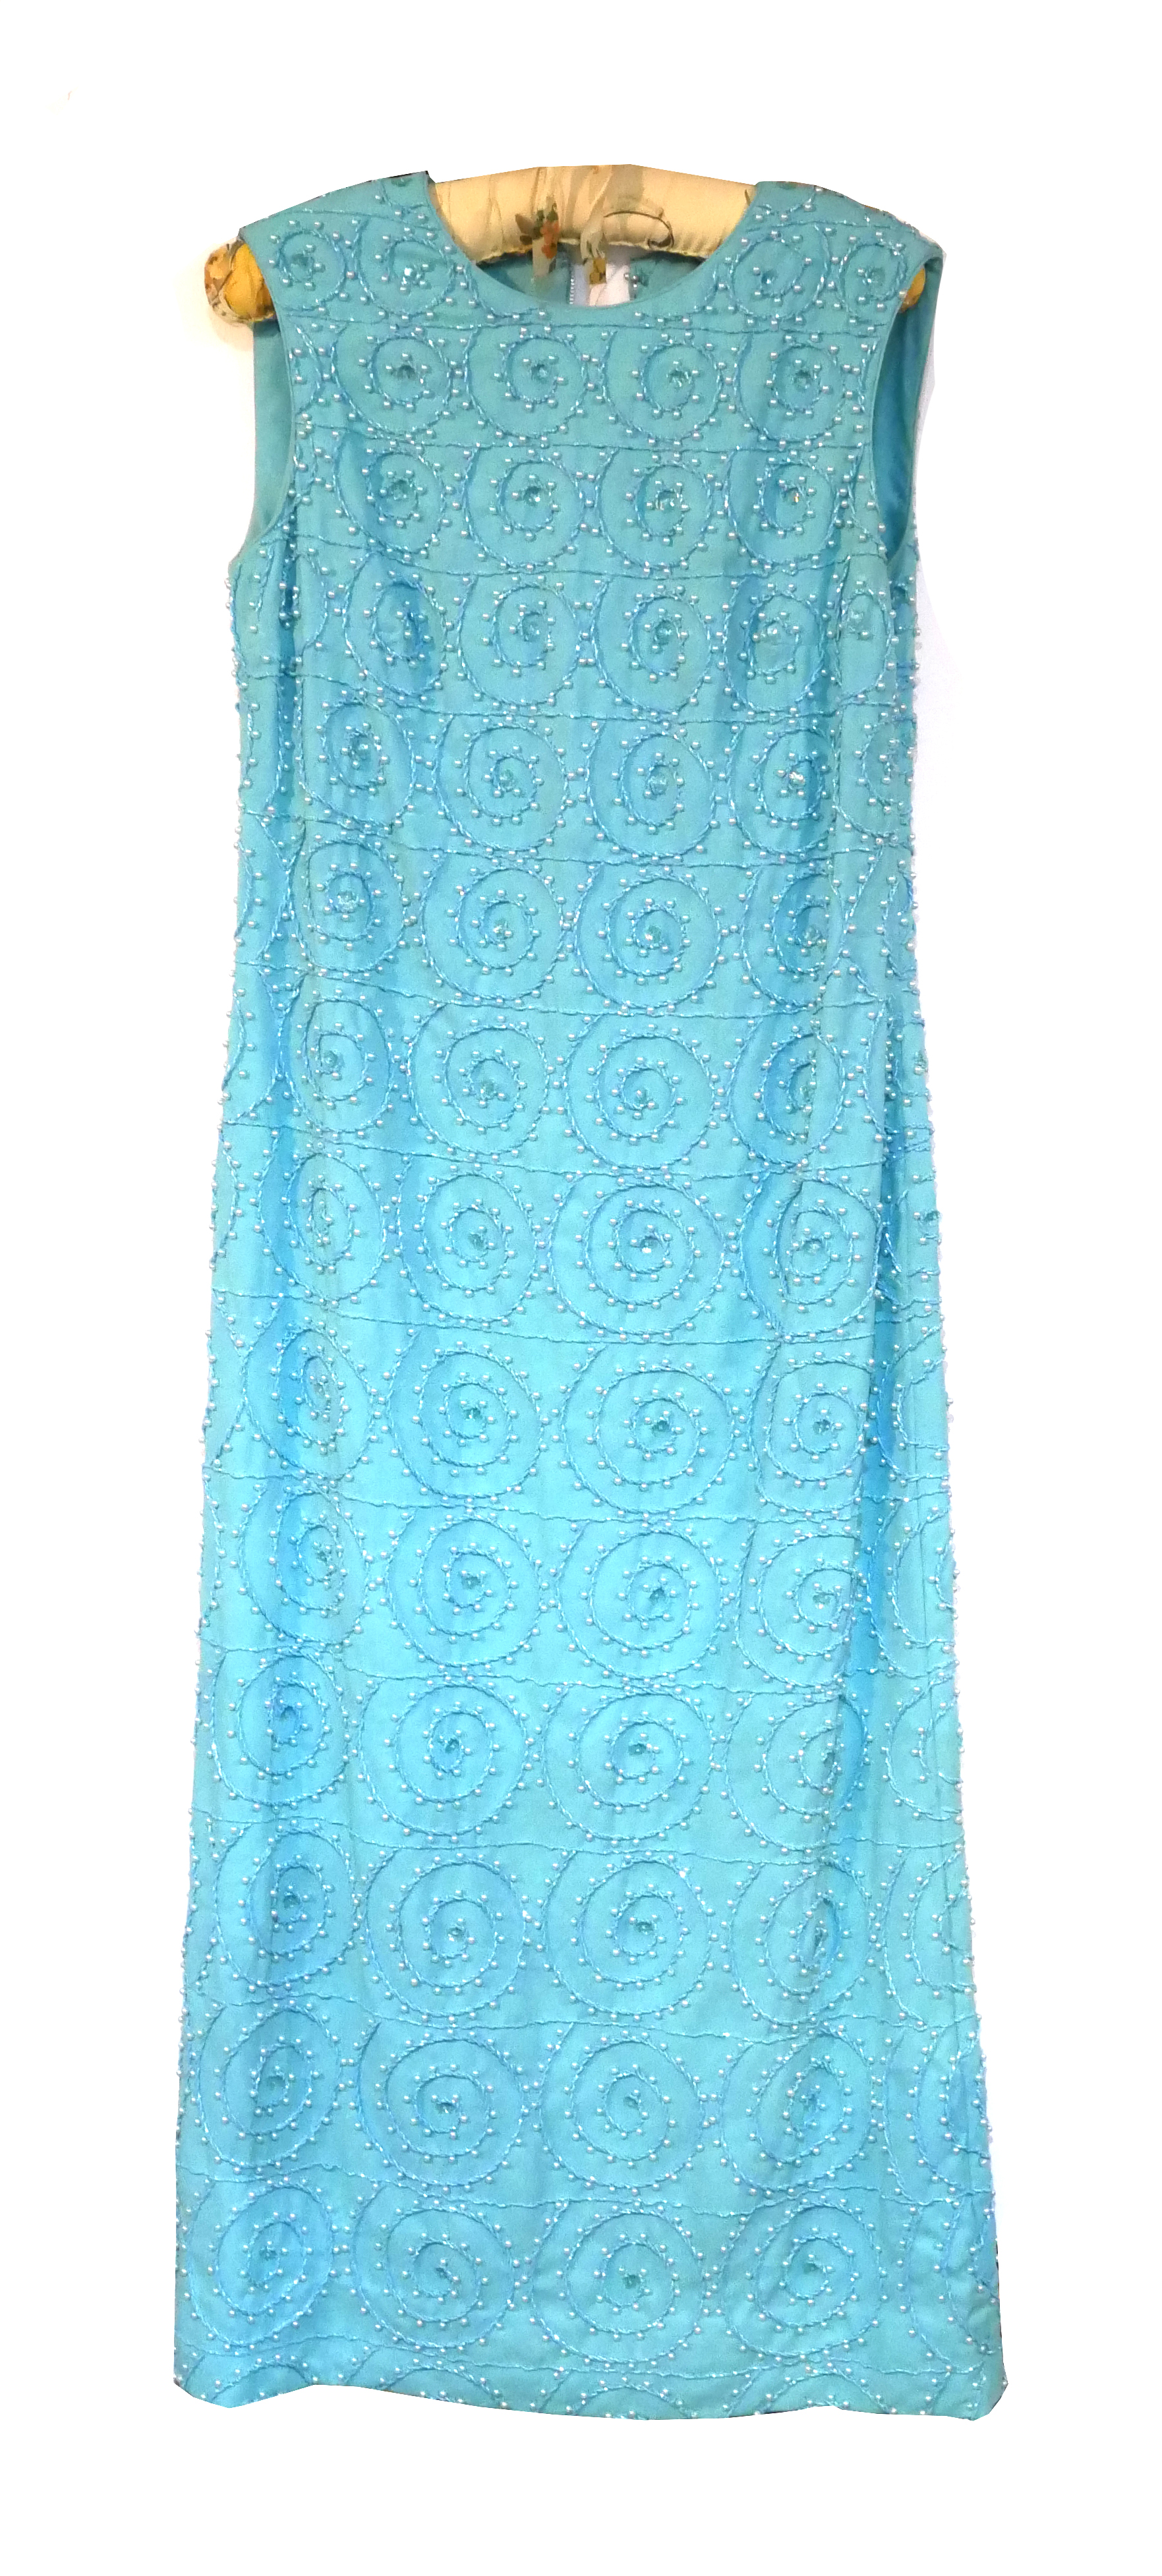 A VINTAGE TURQUOISE FABRIC LADIES' COCKTAIL DRESS Set with hand sewn beads and simulated pearls. (